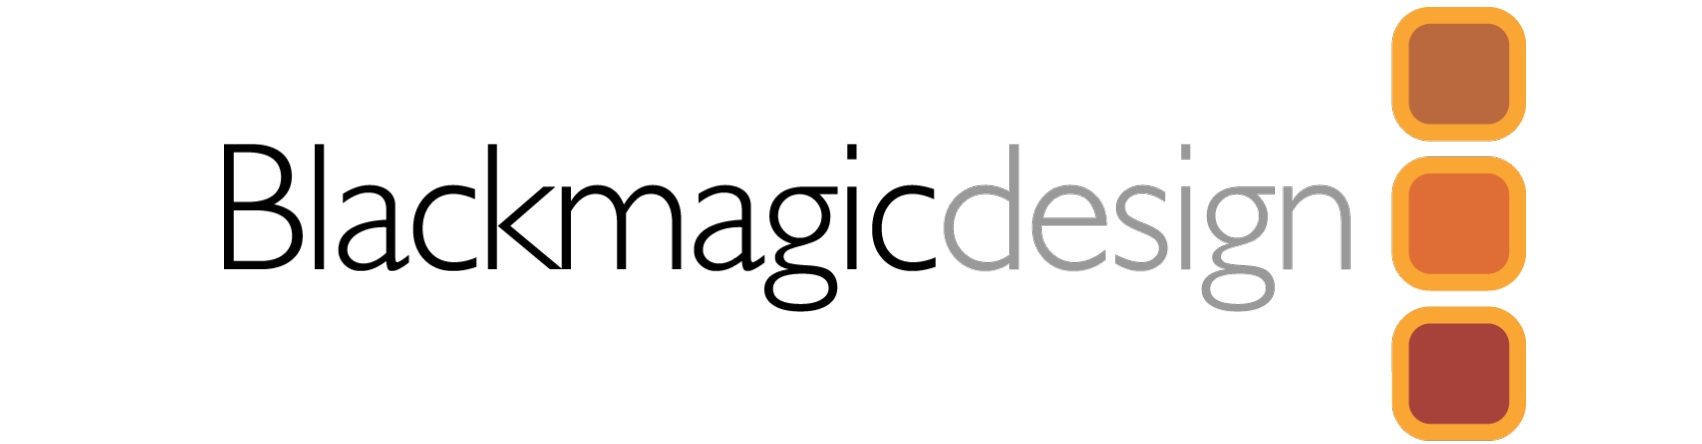 BLACKMAGIC DESIGN LOGO CATTS CAMERA